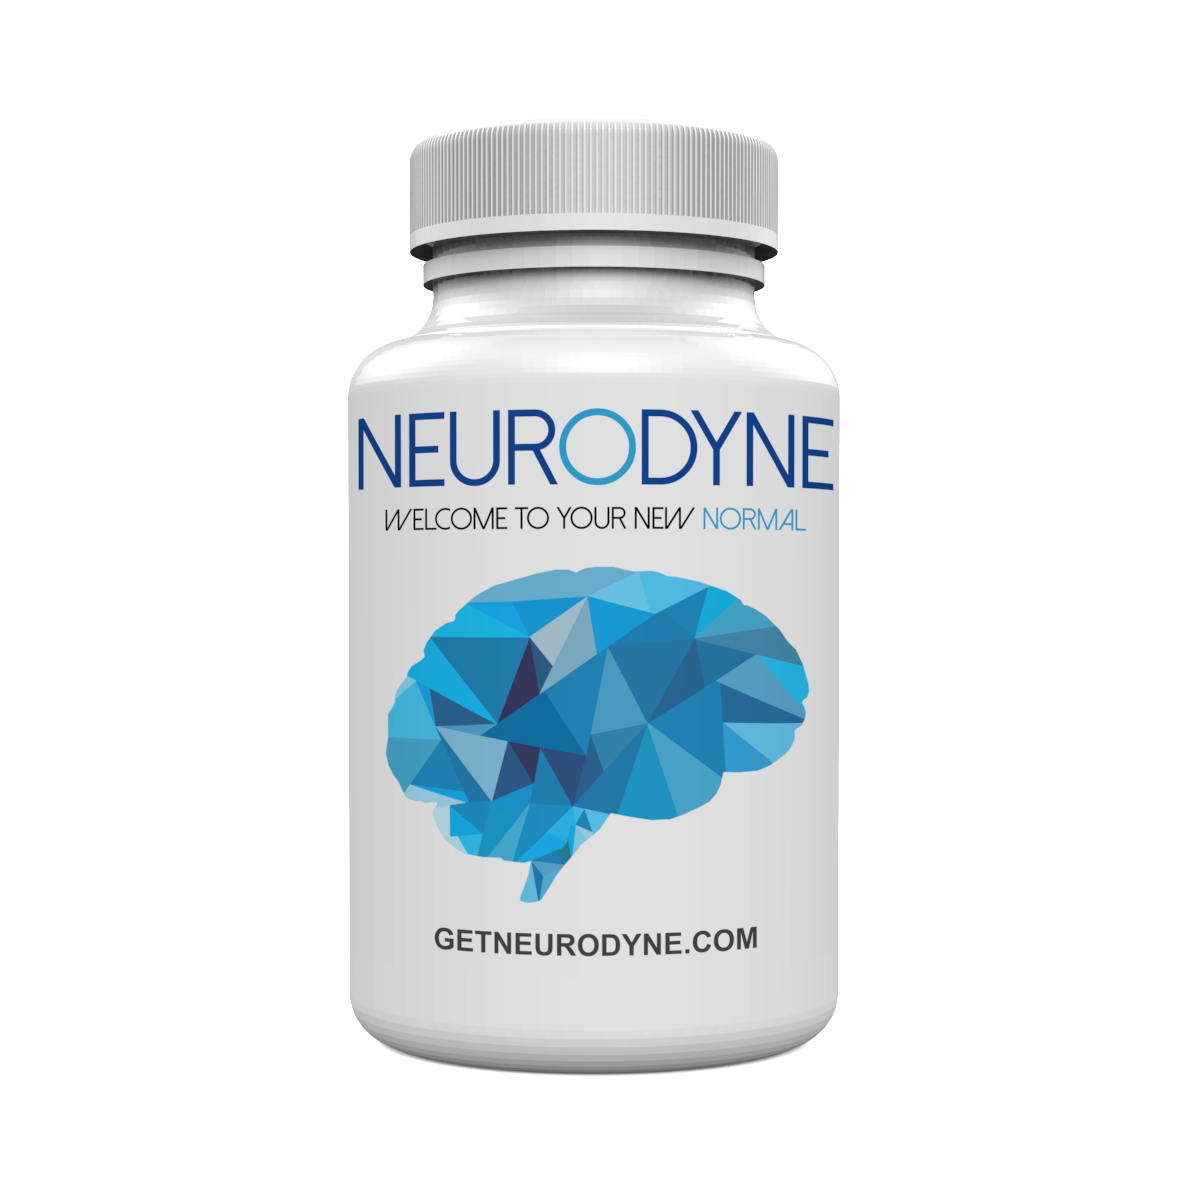 Neurodyne Bottle